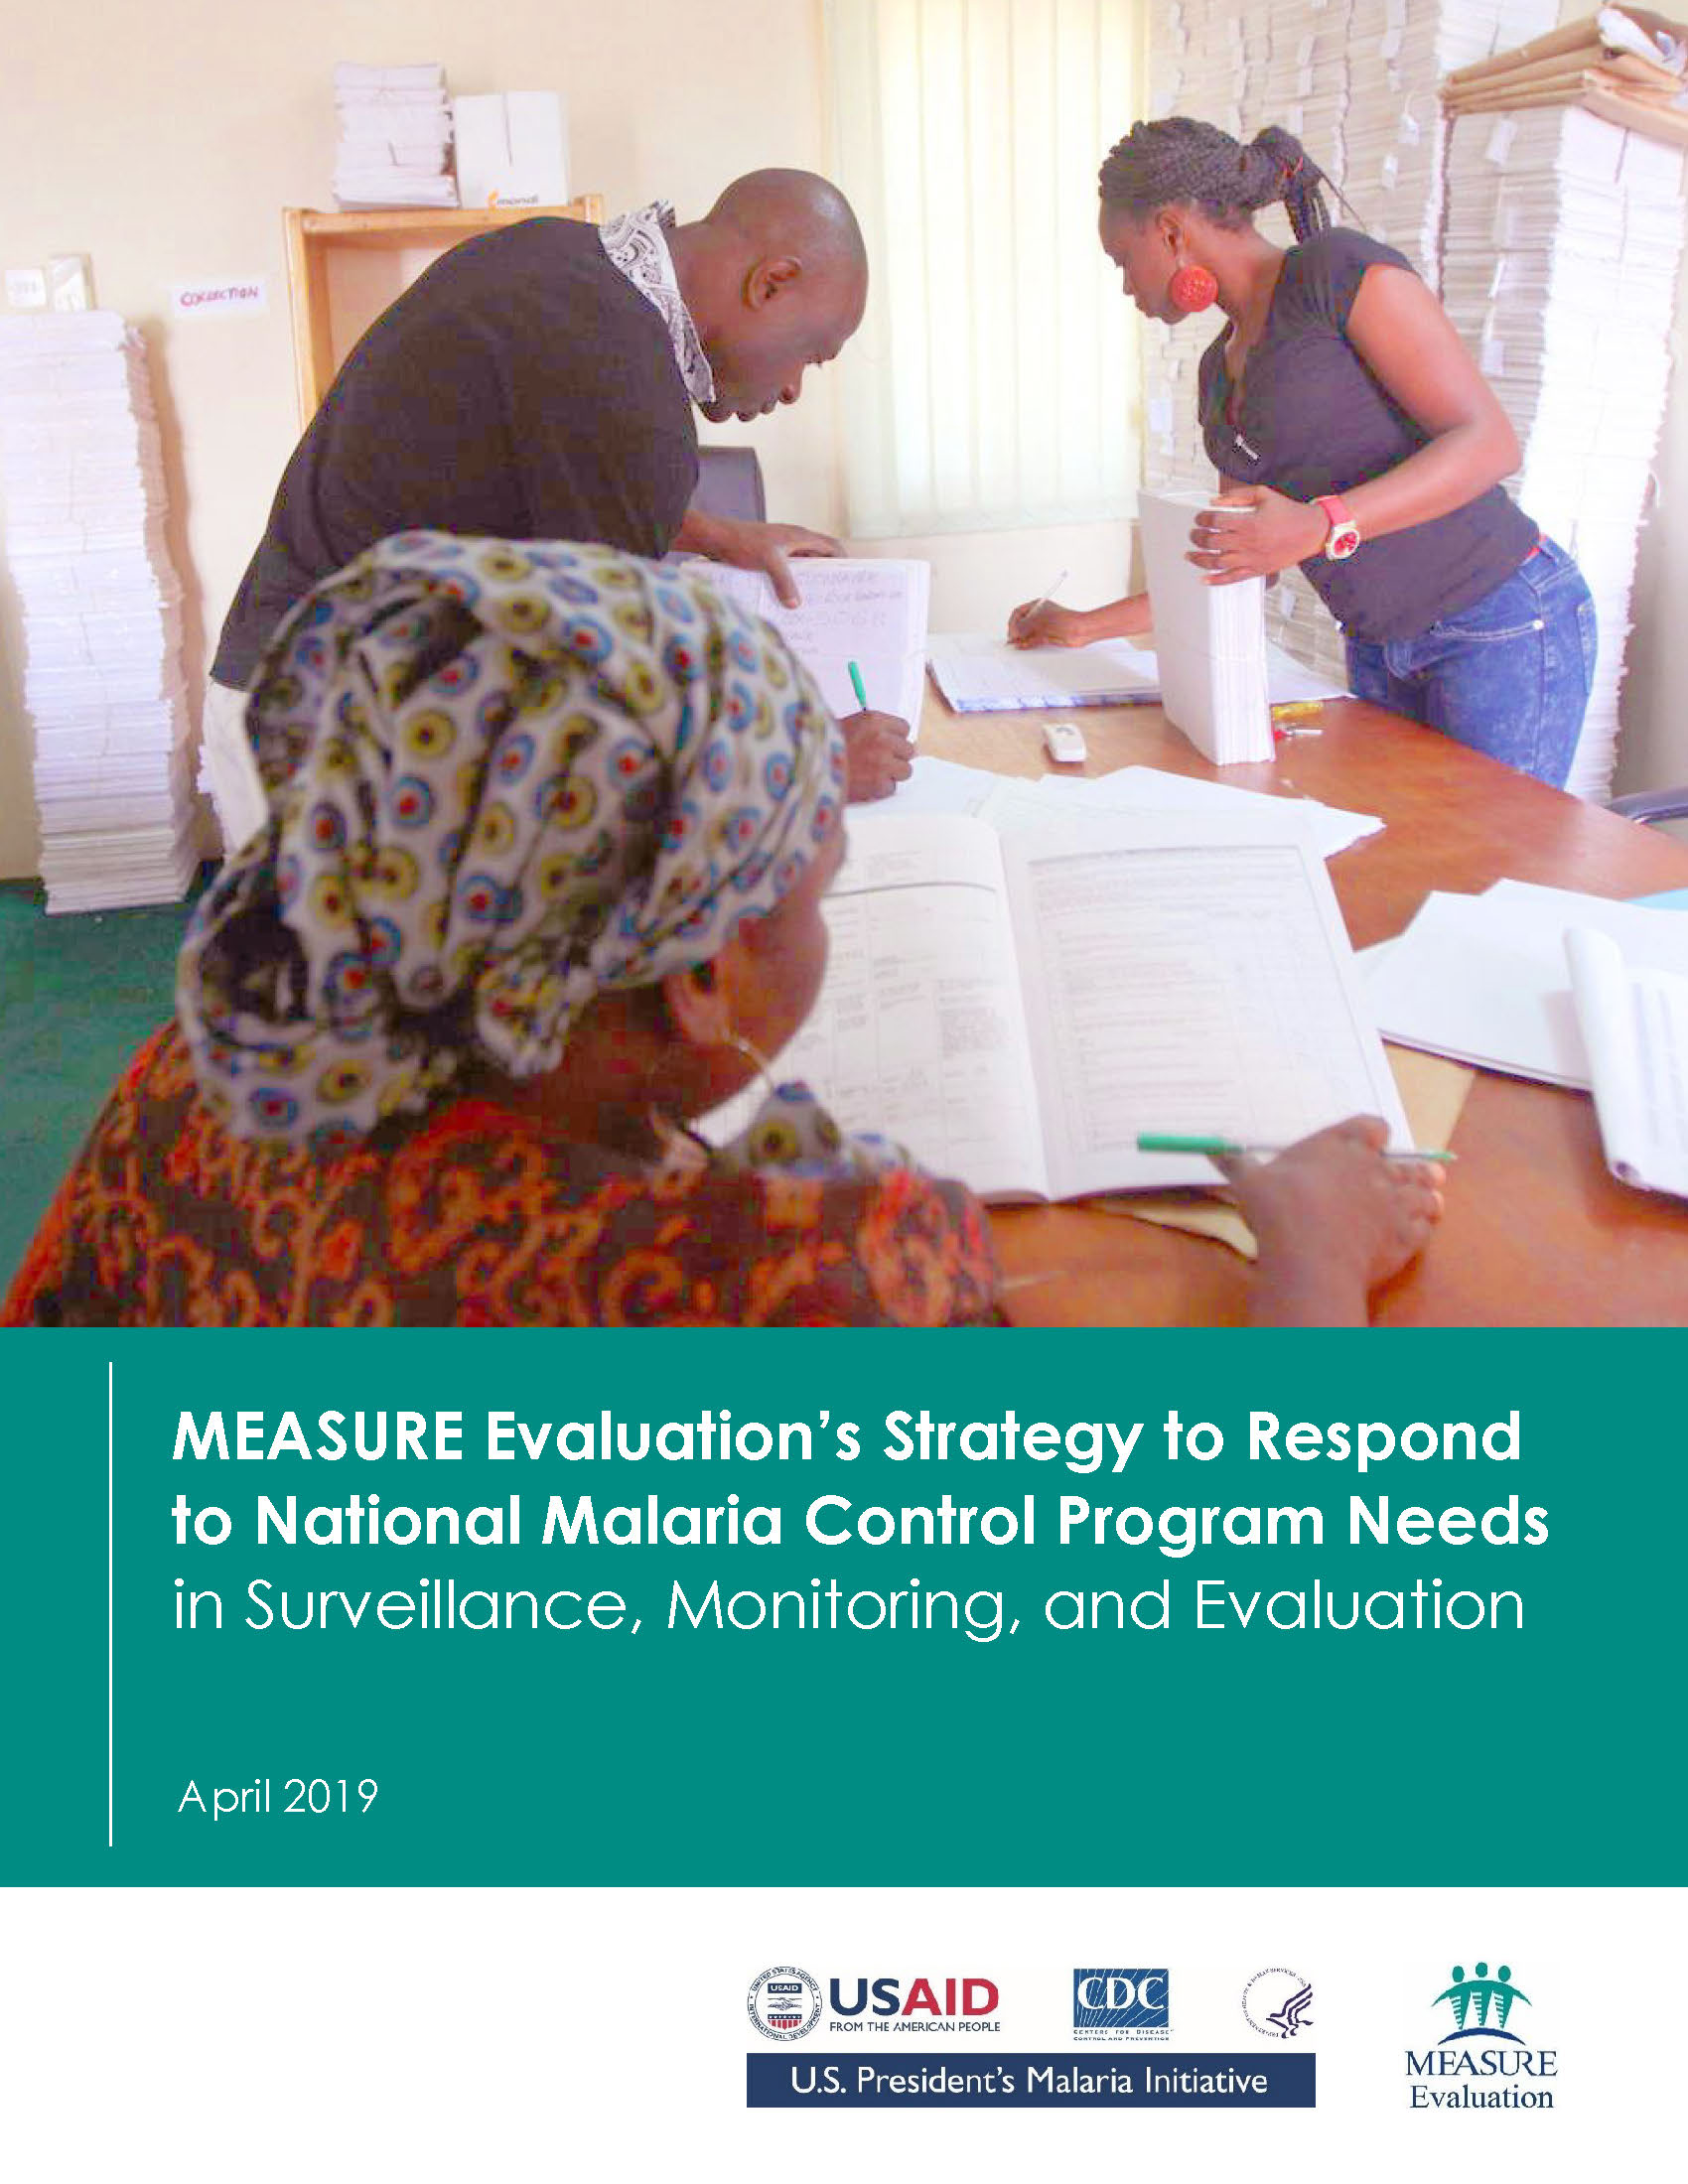 MEASURE Evaluations Strategy to Respond to National Malaria Control Program Needs in Surveillance